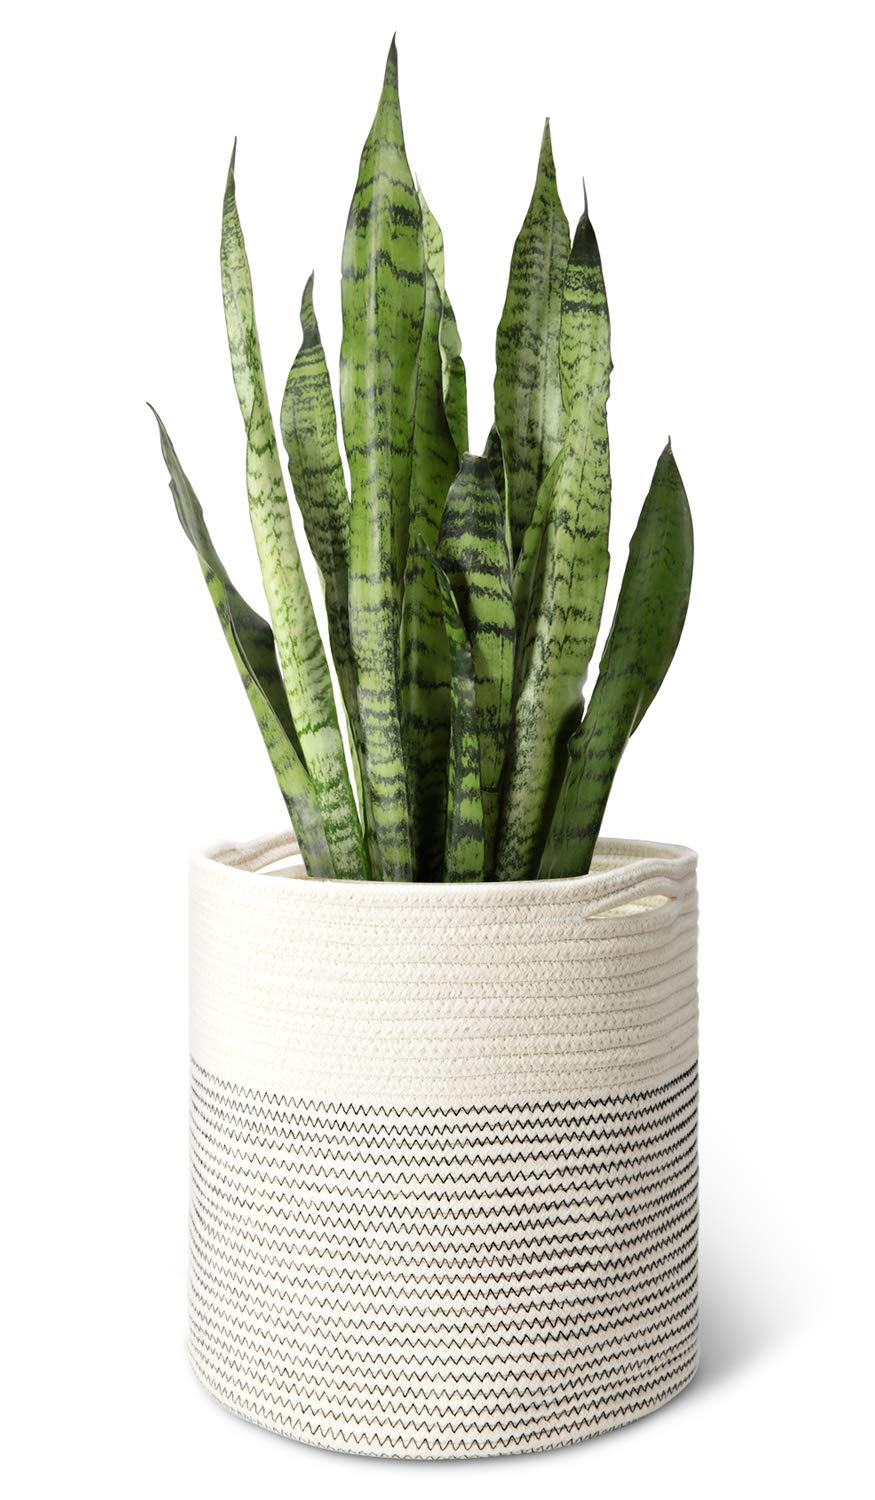 """Mkono Cotton Rope Plant Basket Modern Indoor Planter Up to 11 Inch Pot Woven Storage Organizer with Handles Home Decor, 12"""" x 12"""""""